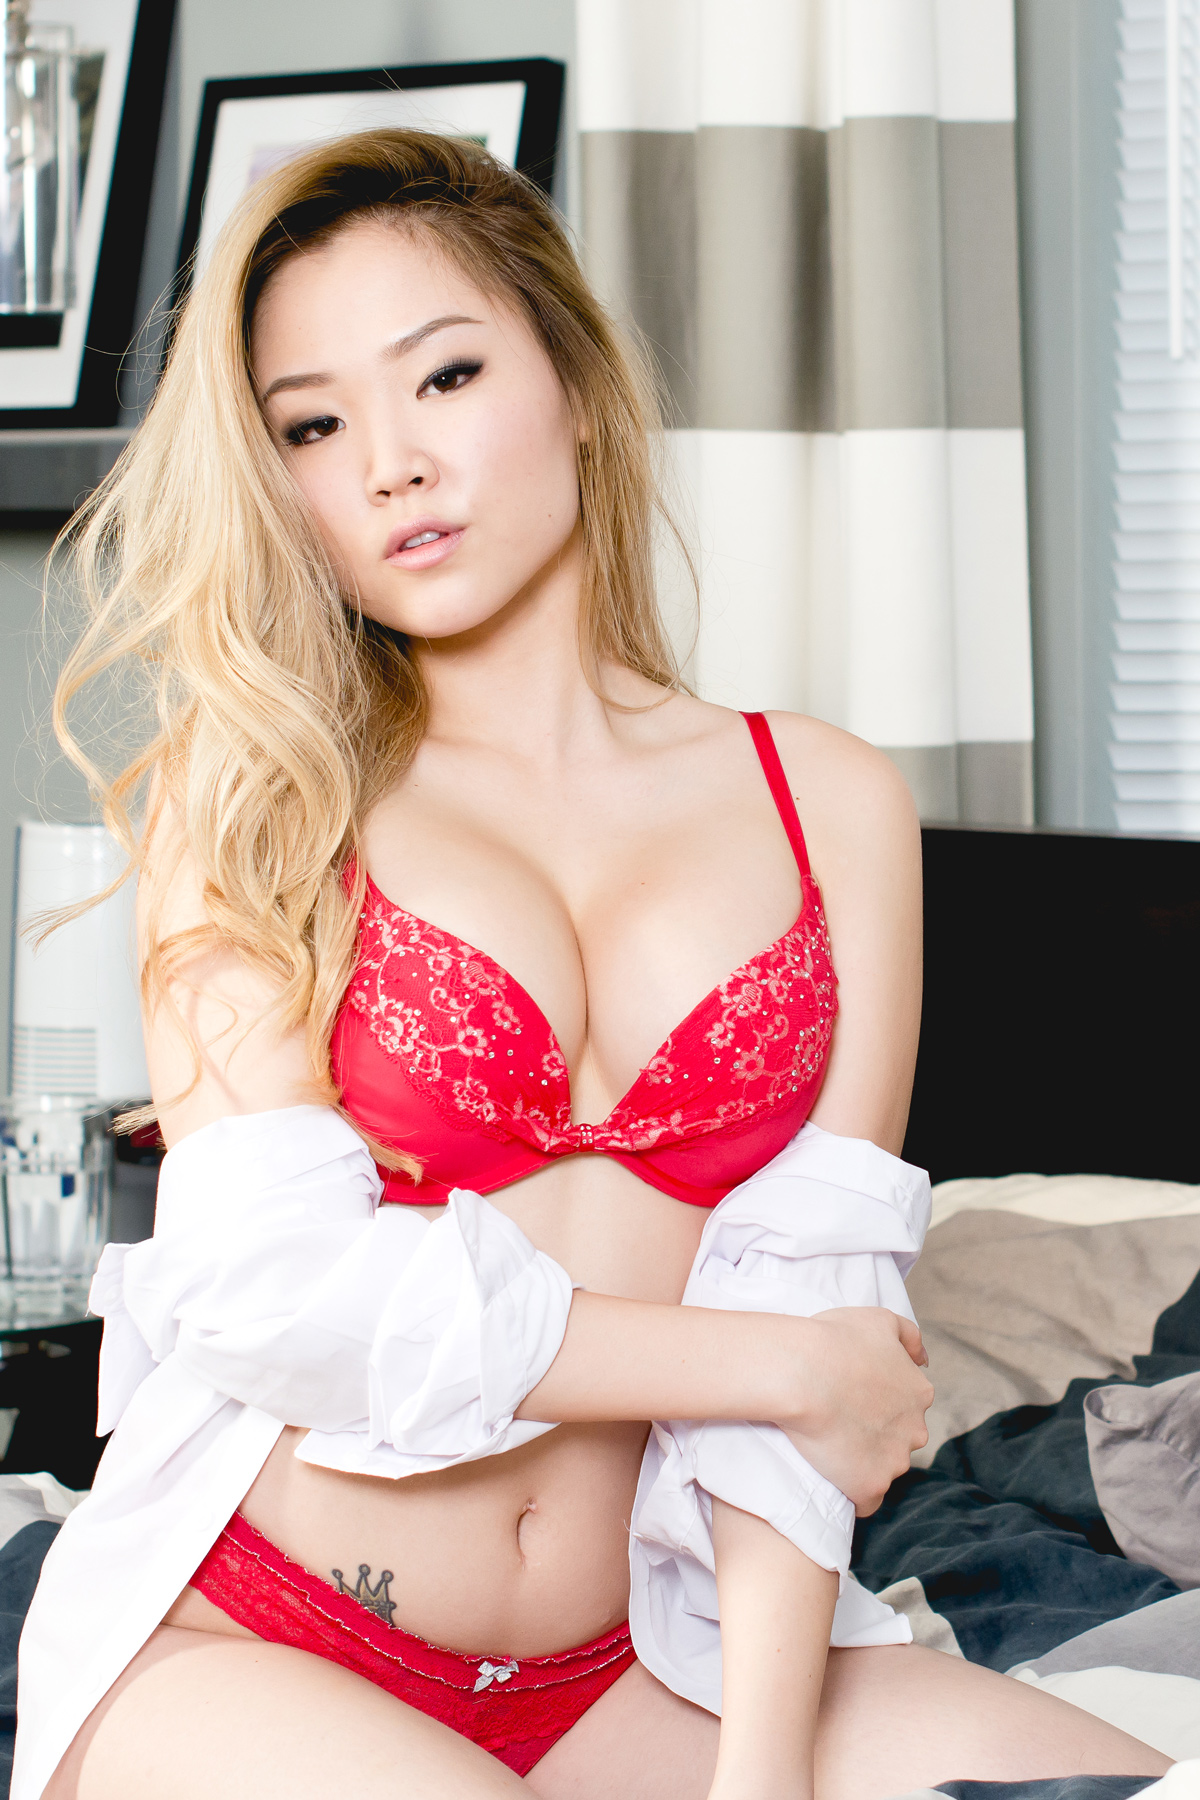 Bryan-Miraflor-Photography-Amped-Asia-Diane-Invasian-Lingerie-Bedroom-20141224-0024